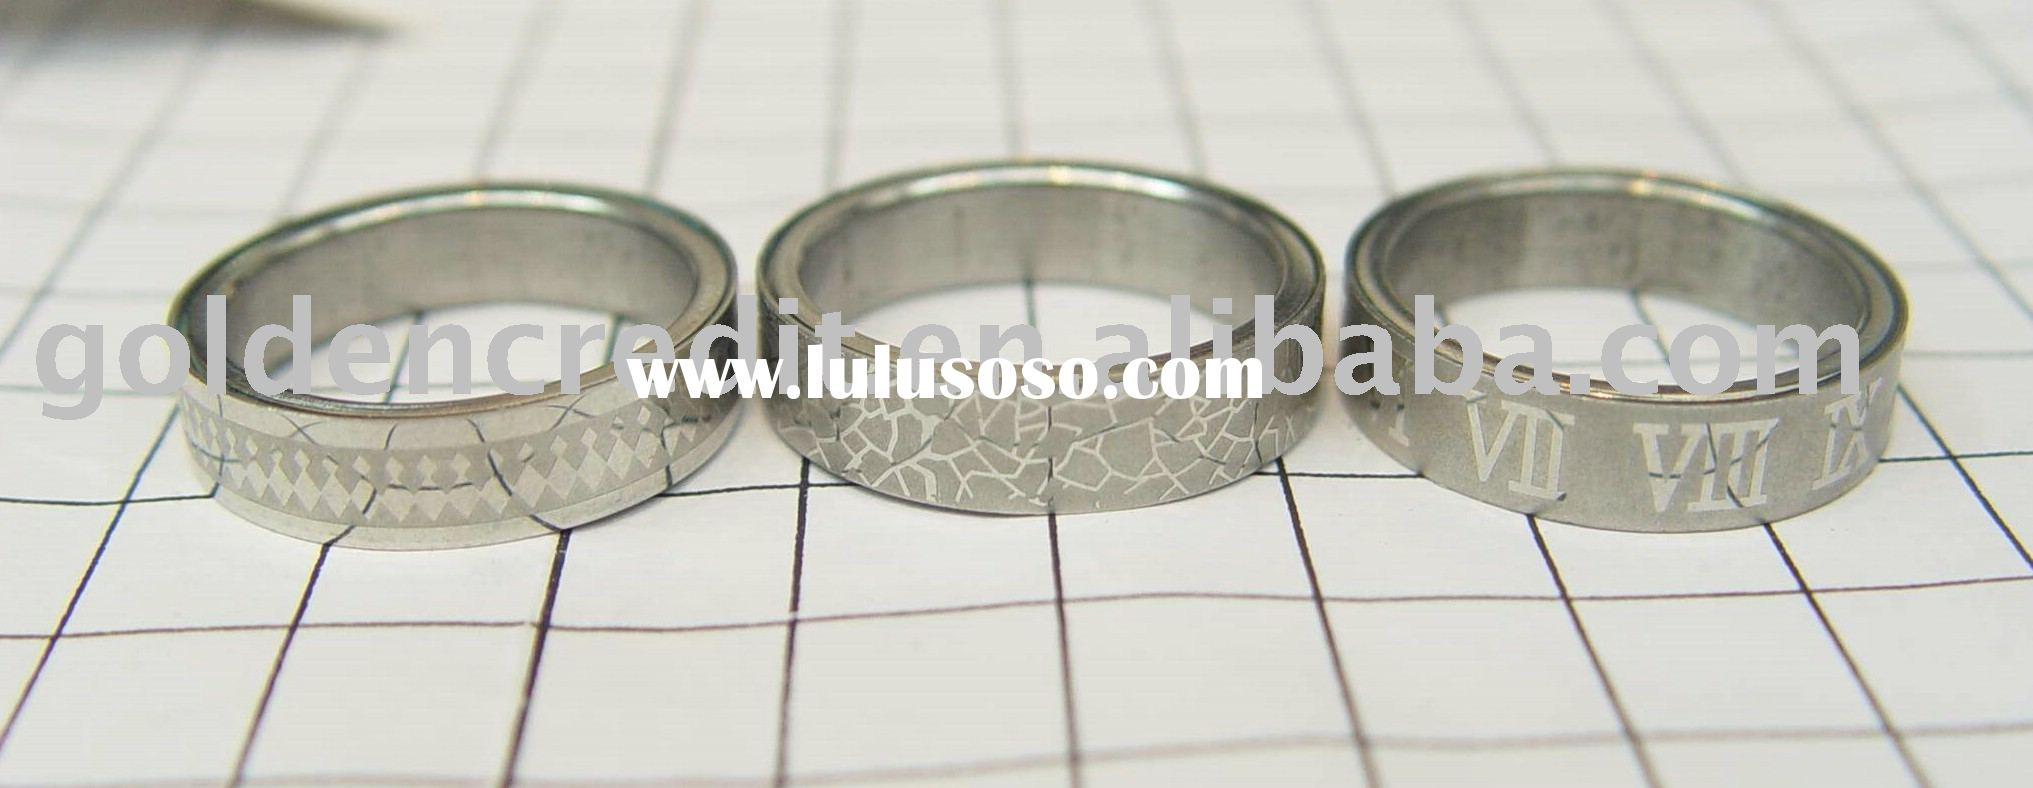 fashion rings /alloy rings/stainless steel rings /the latest style of ring /imitation jewelry